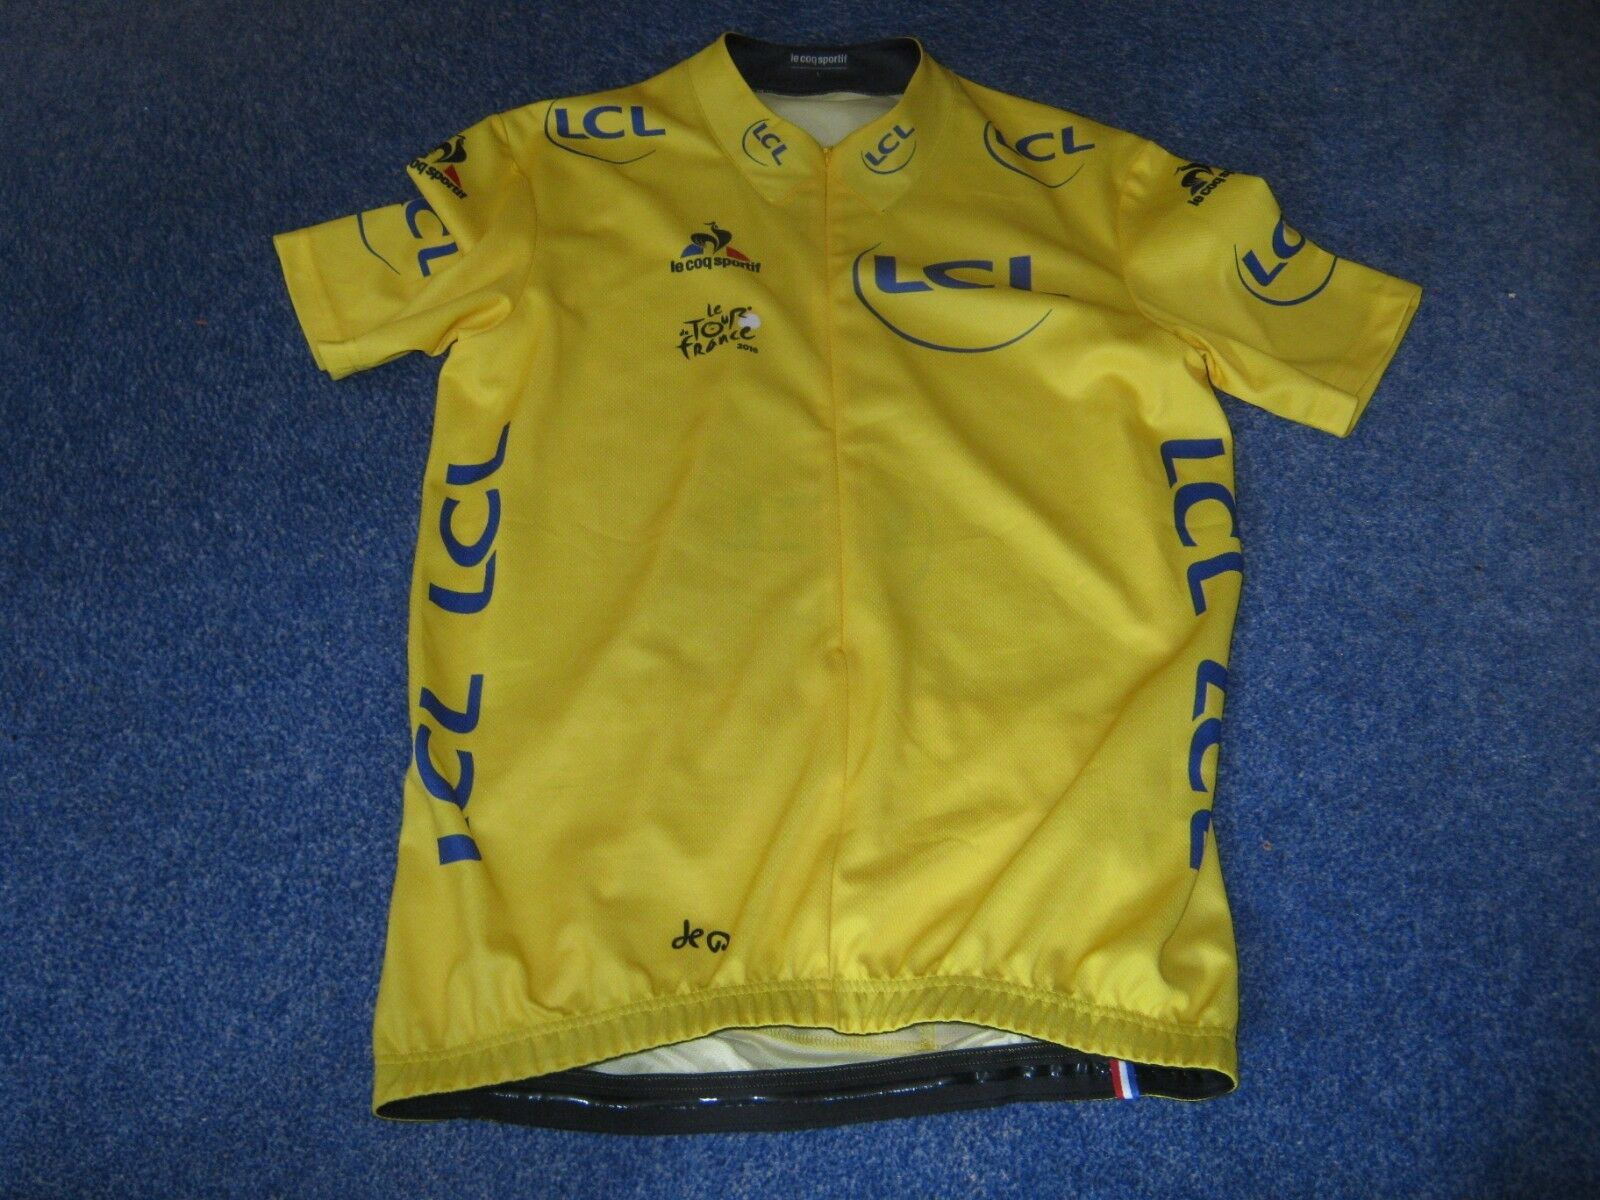 TOUR DE  FRANCE 2016 LCS YELLOW LEADERS CYCLING JERSEY [L]  100% authentic